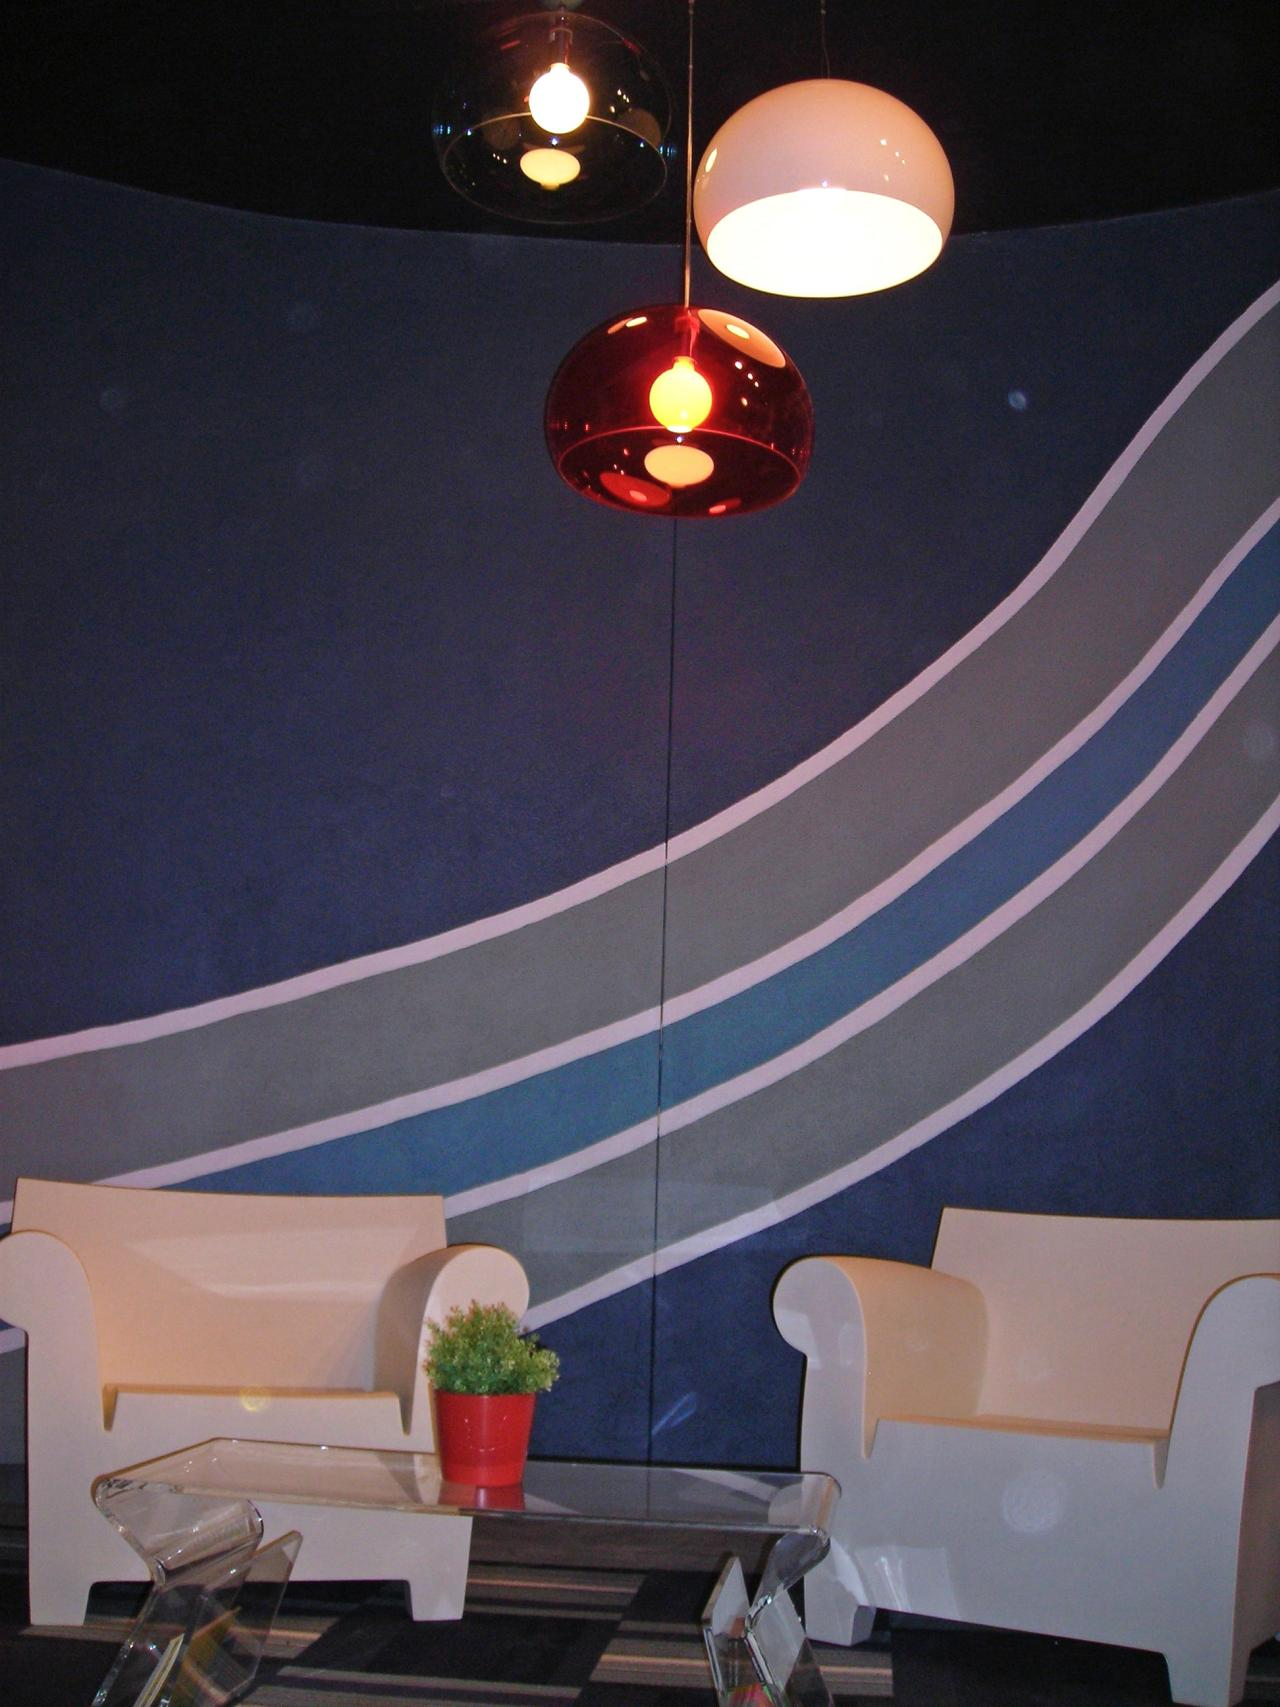 How to paint a wall mural hgtv for Best projector for mural painting